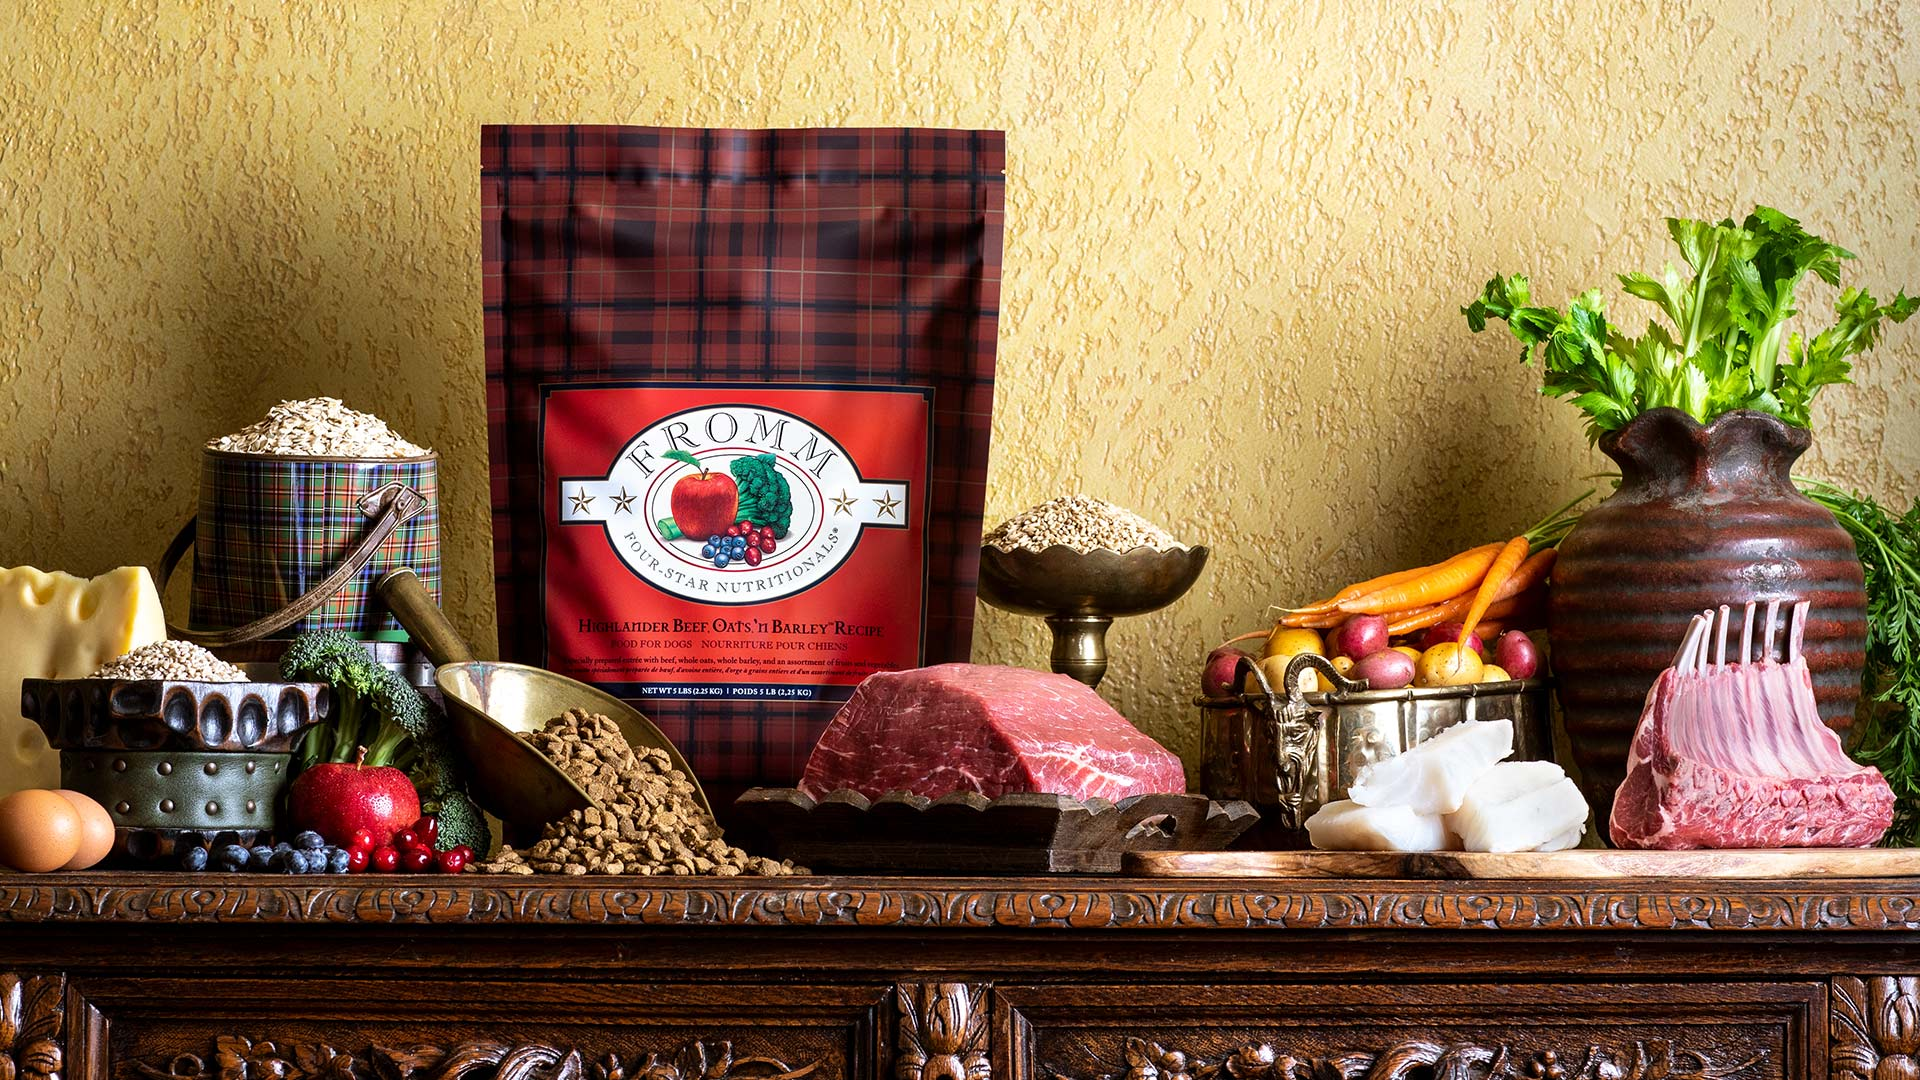 Fromm Highlander Beef, Oats, 'n Barley® Recipe Food for Dogs